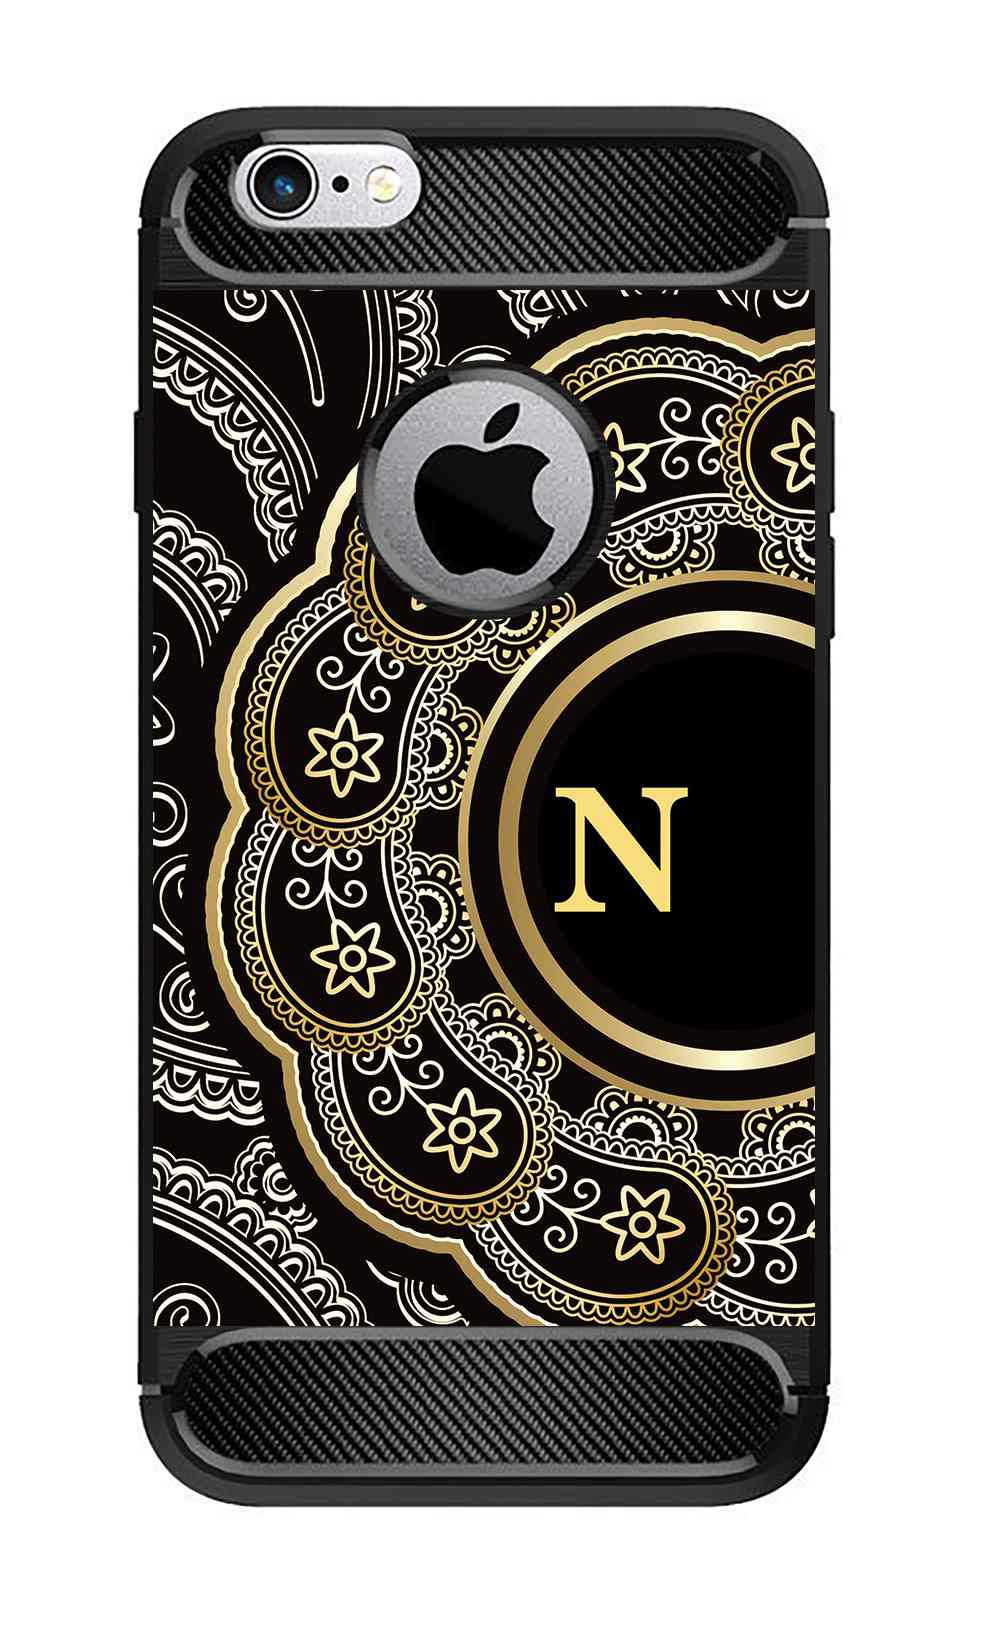 Apple iPhone 5 3D Back Covers By ZAPCASE